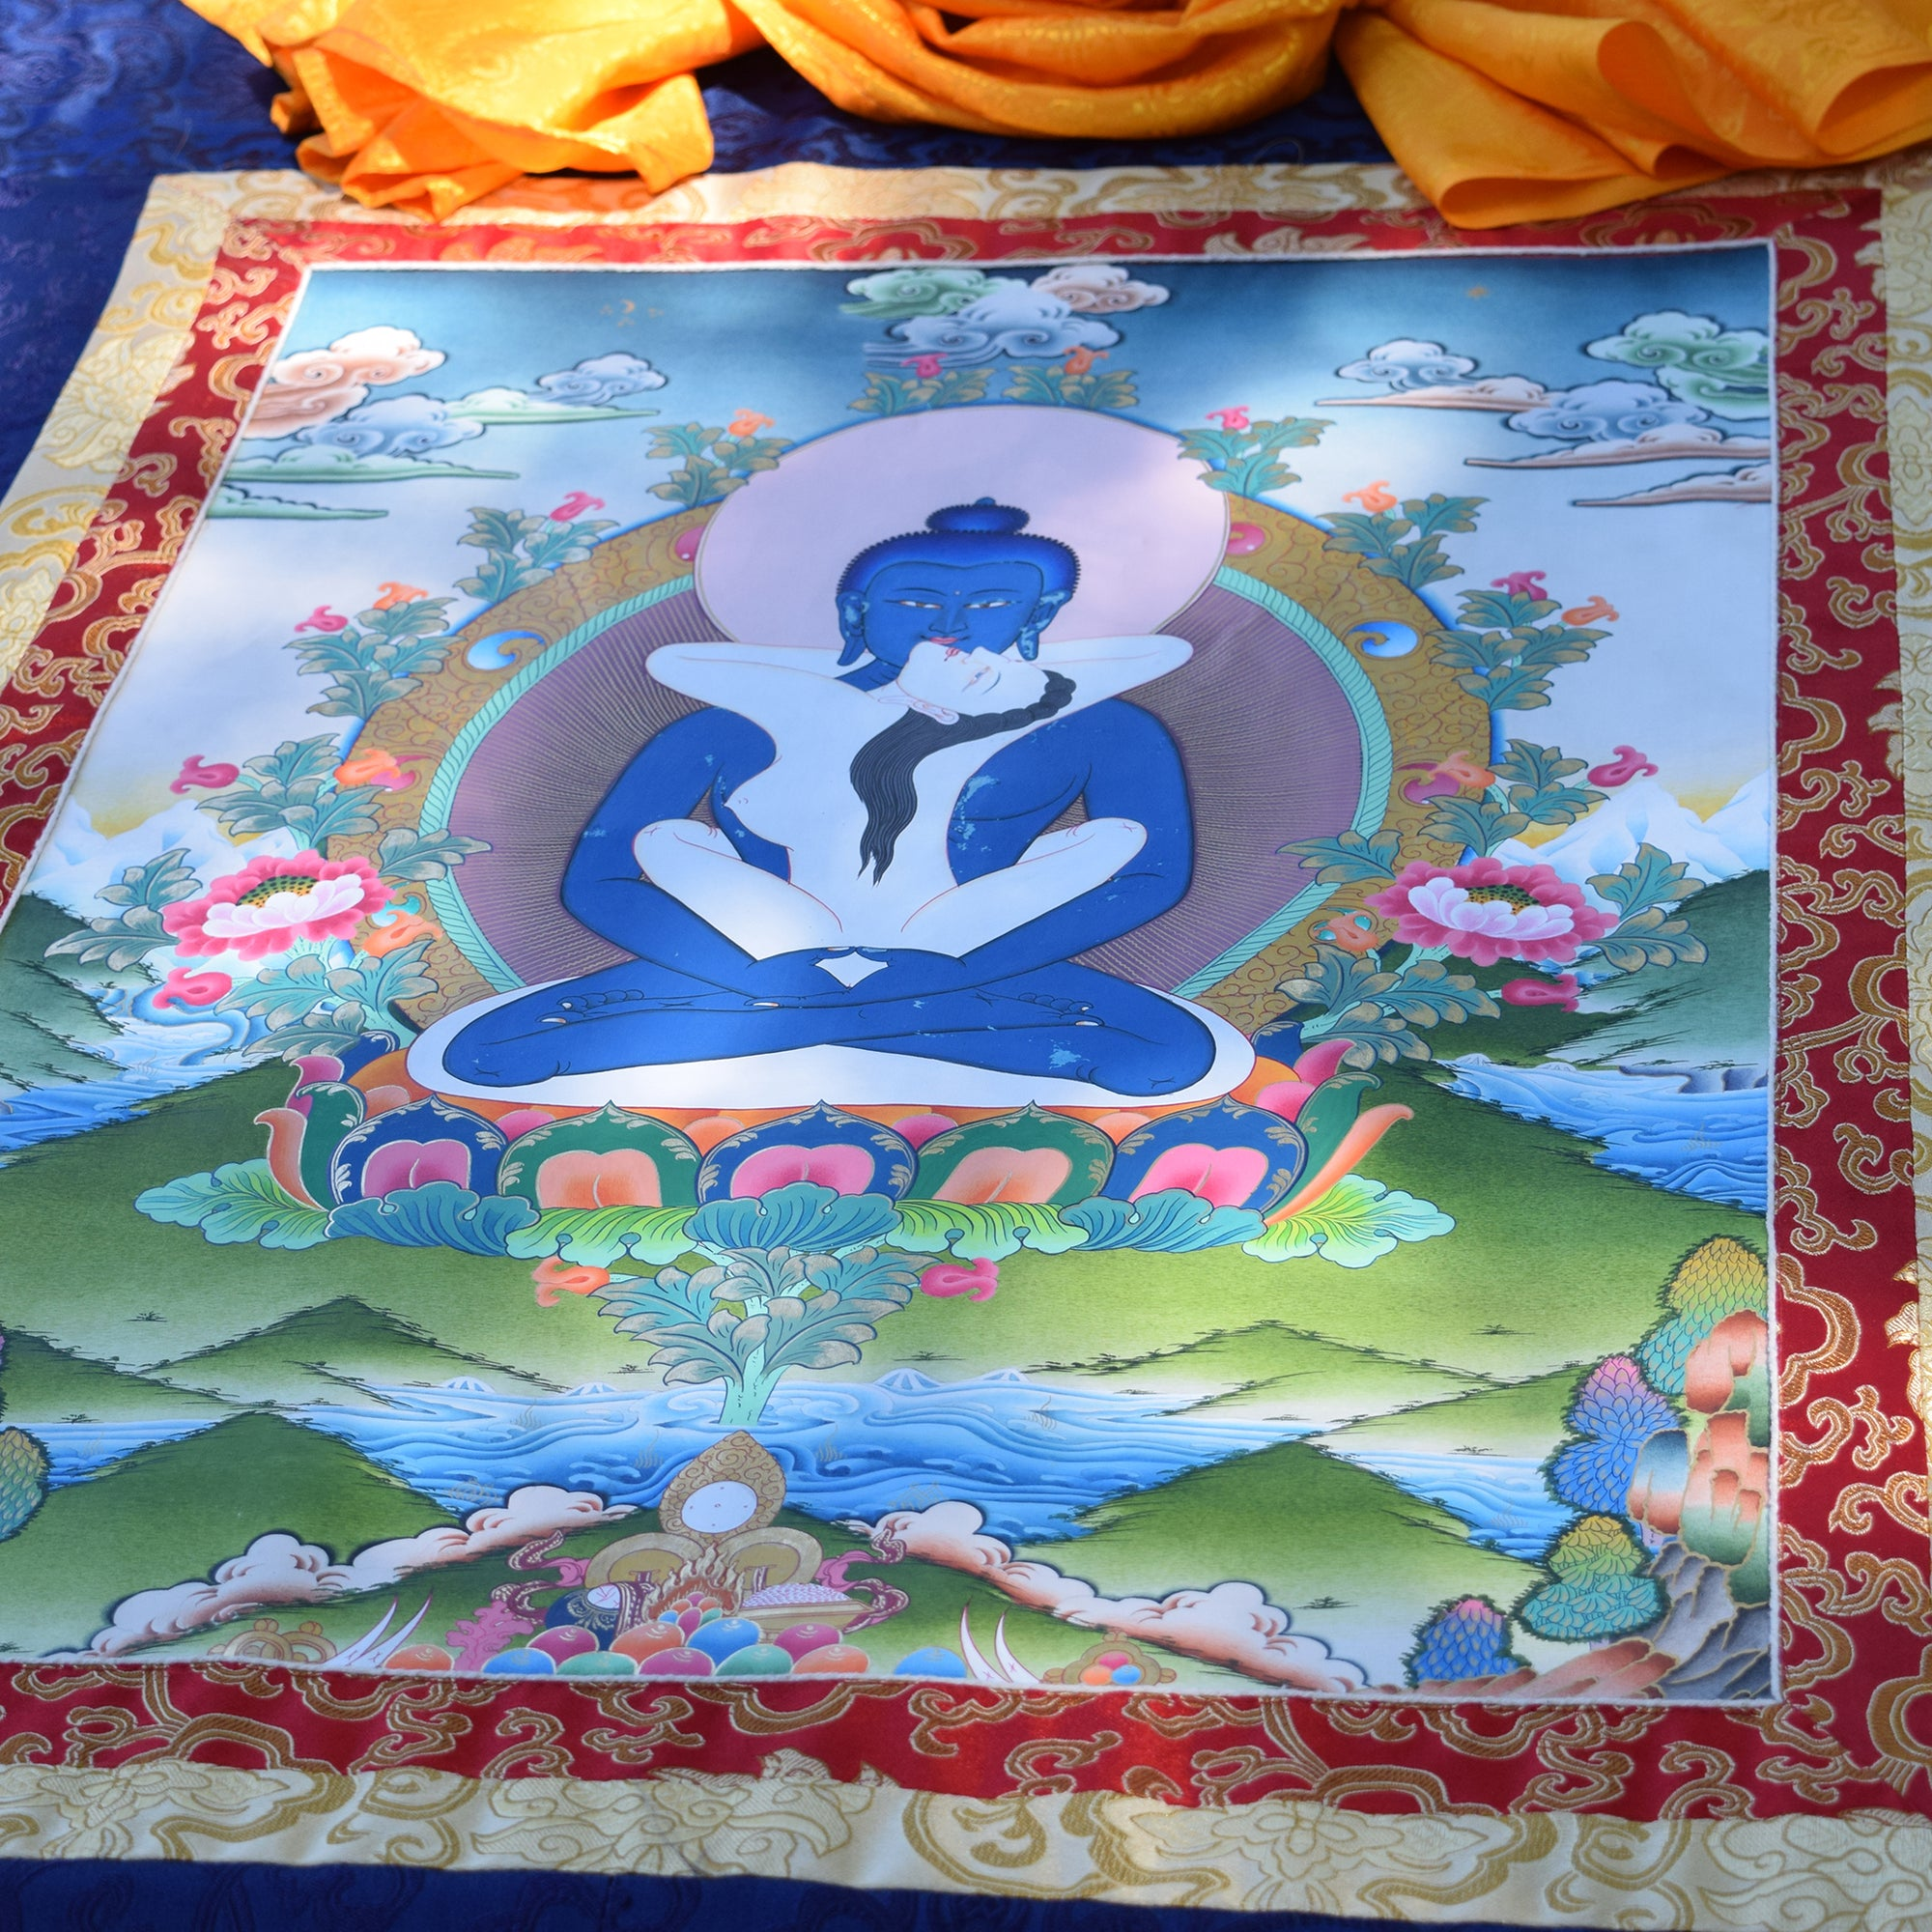 Samantabhadra Thangka